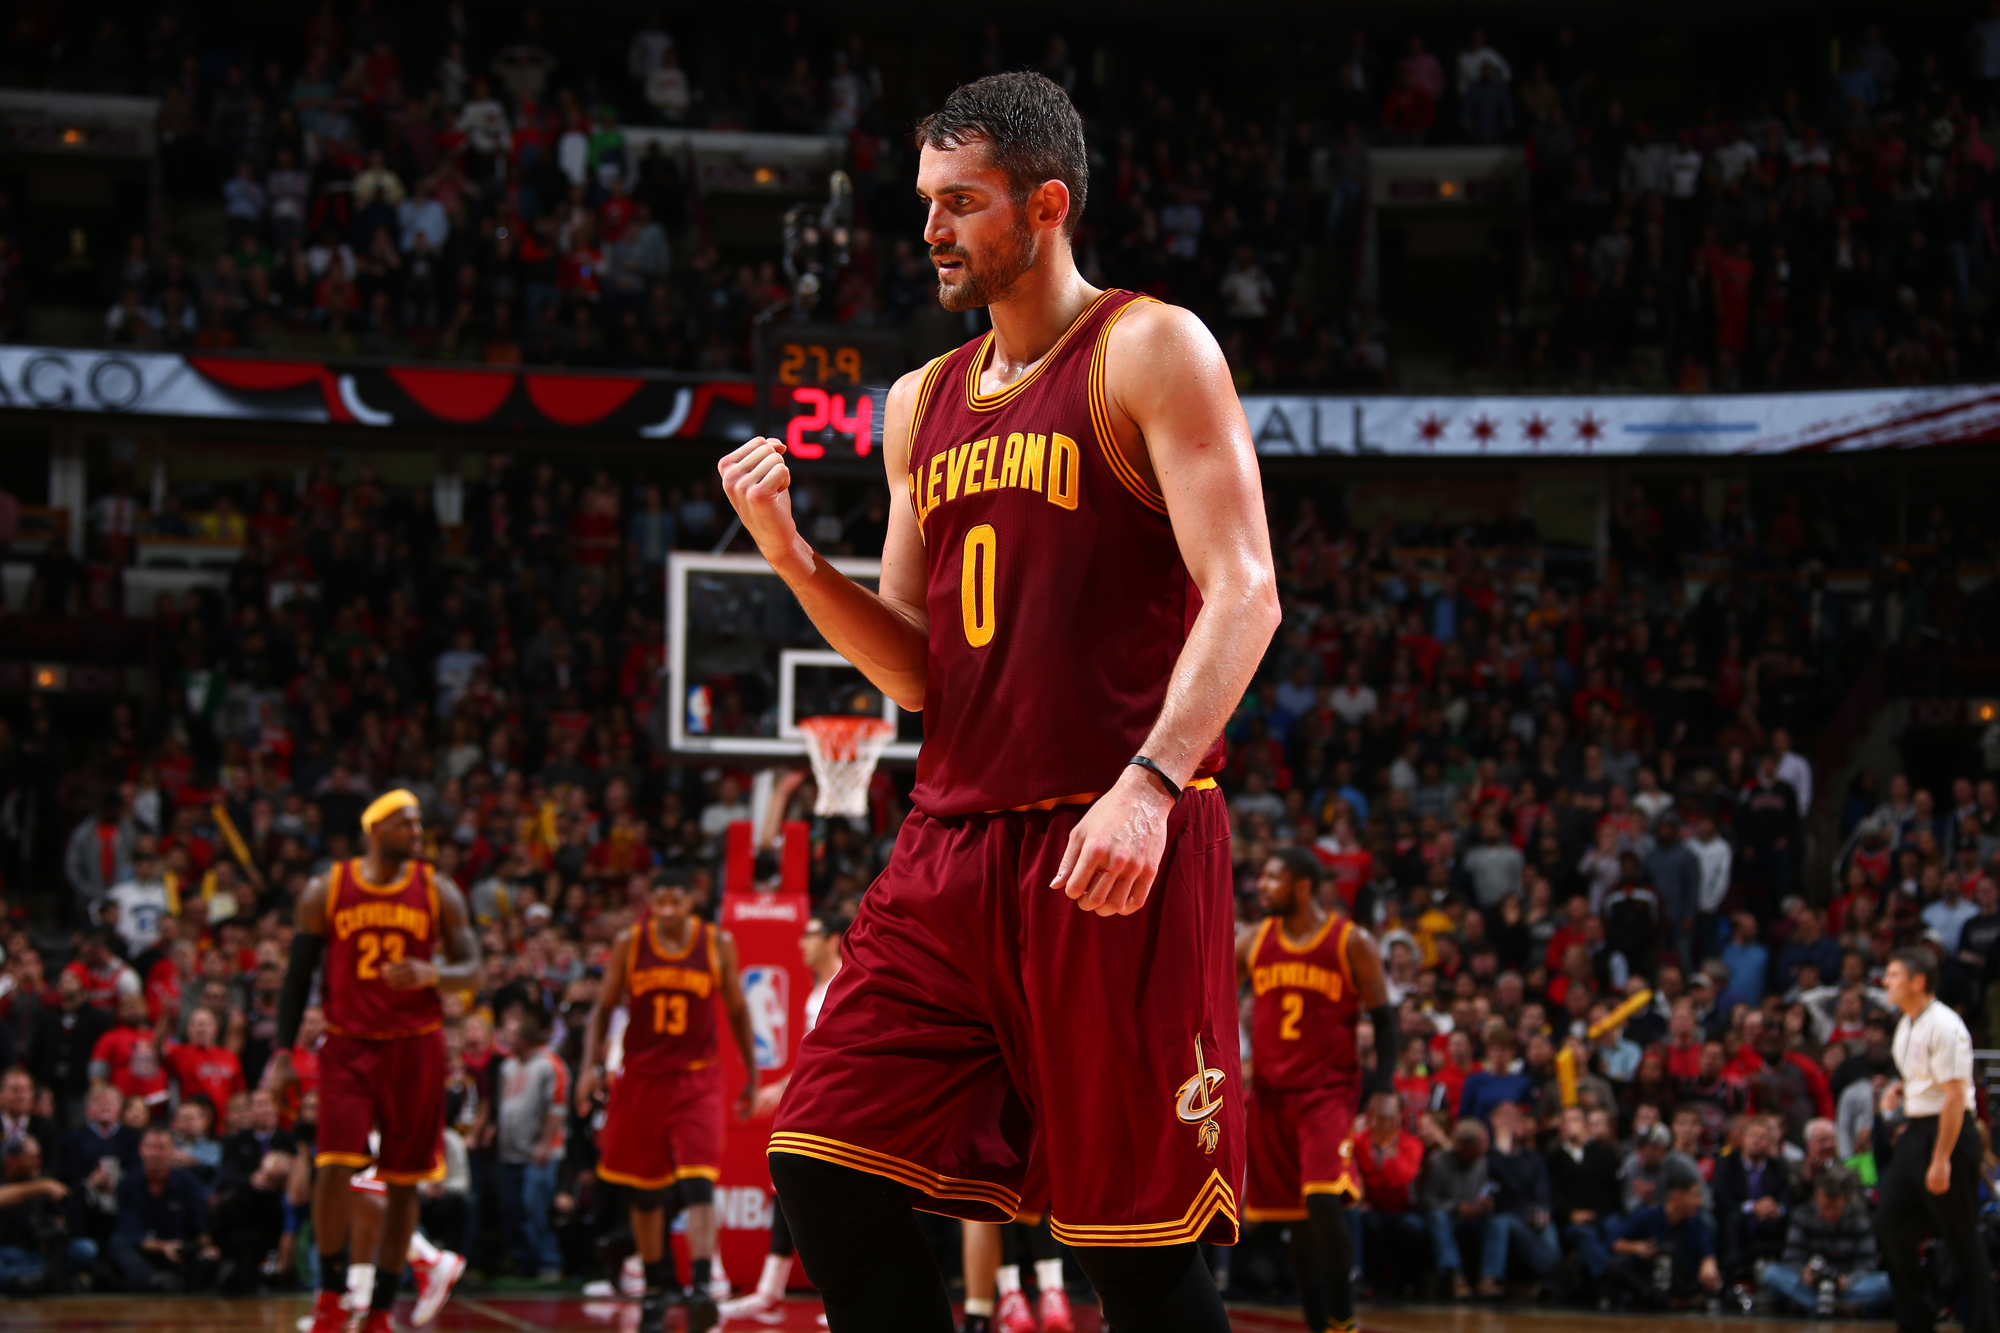 Kevin Love #0 of the Cleveland Cavaliers celebrates during a game against the Chicago Bulls at the United Center on October 31, 2014 in Chicago, Illinois.